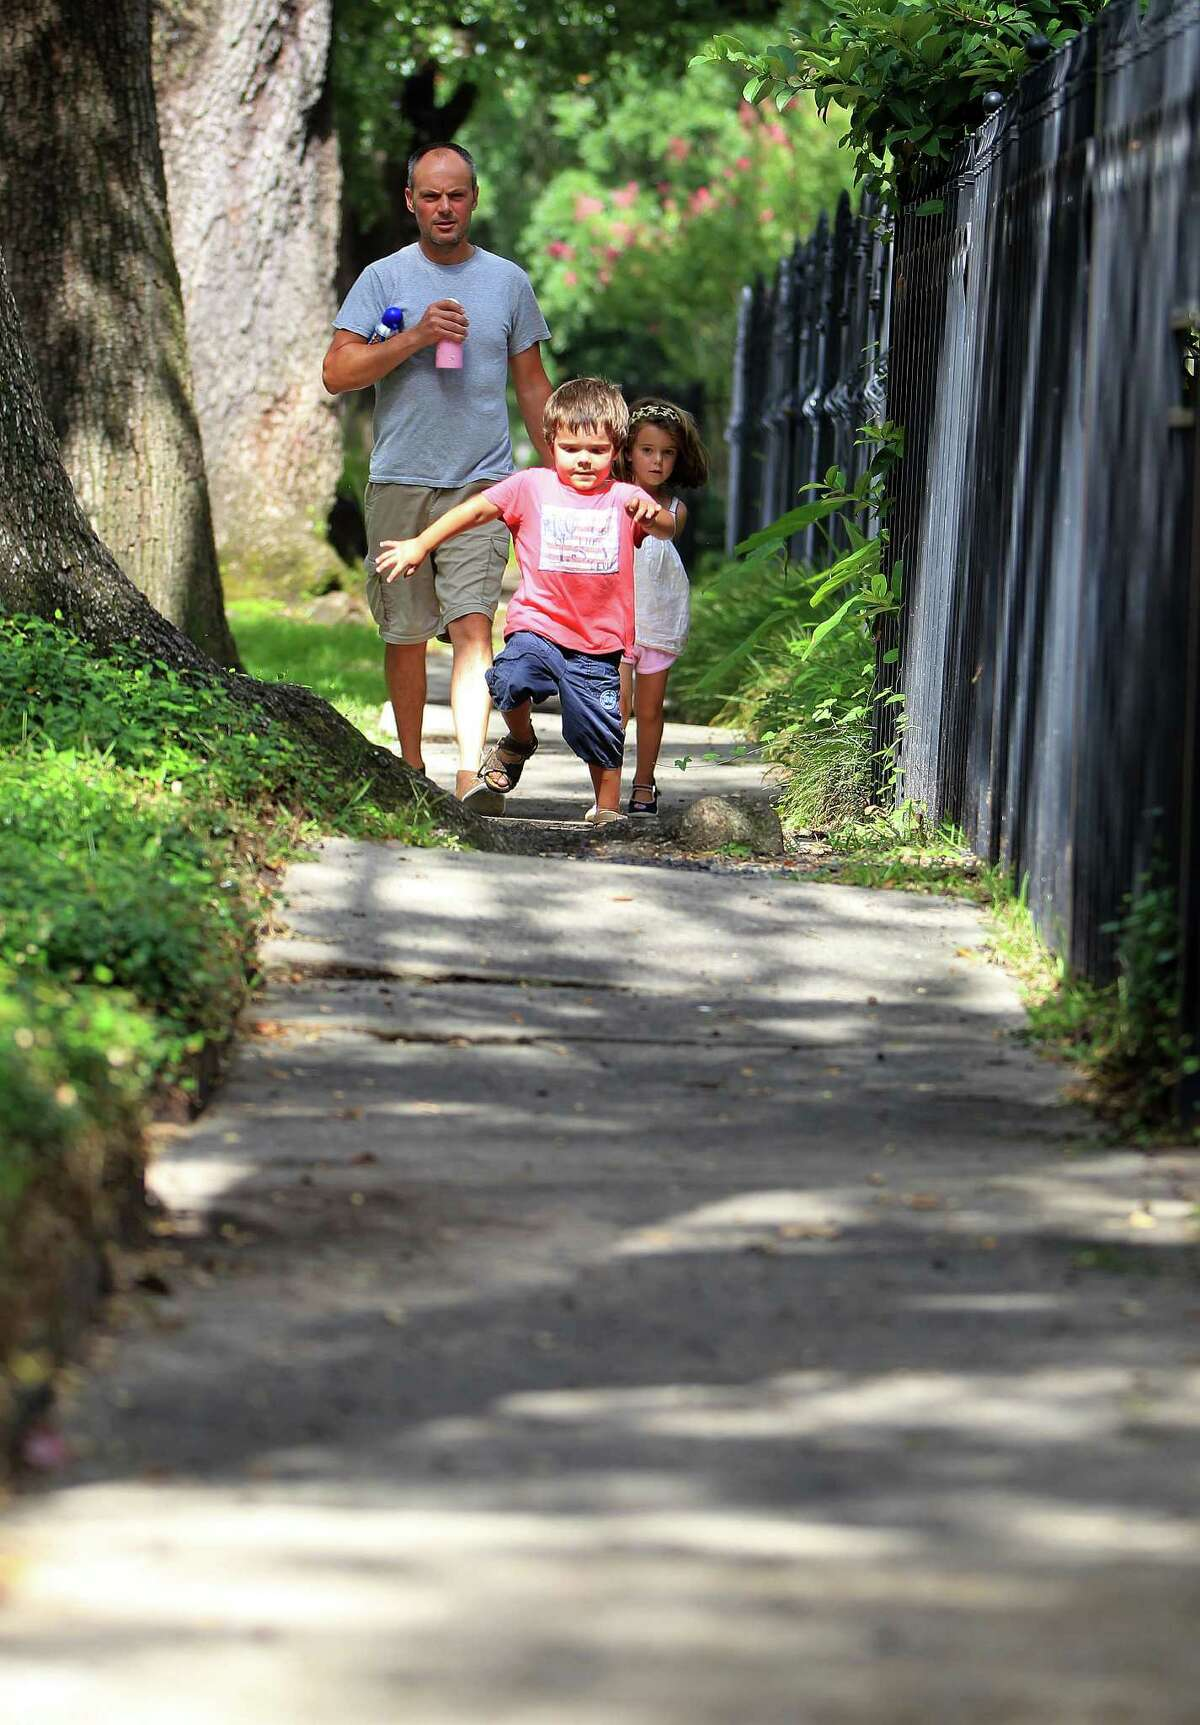 Daniel Spibey walks with his children Hatty, 5, and Ned, 3, along Bayland in Woodland Heights. Sidewalks in such disrepair can present real dangers for disabled or elderly residents.